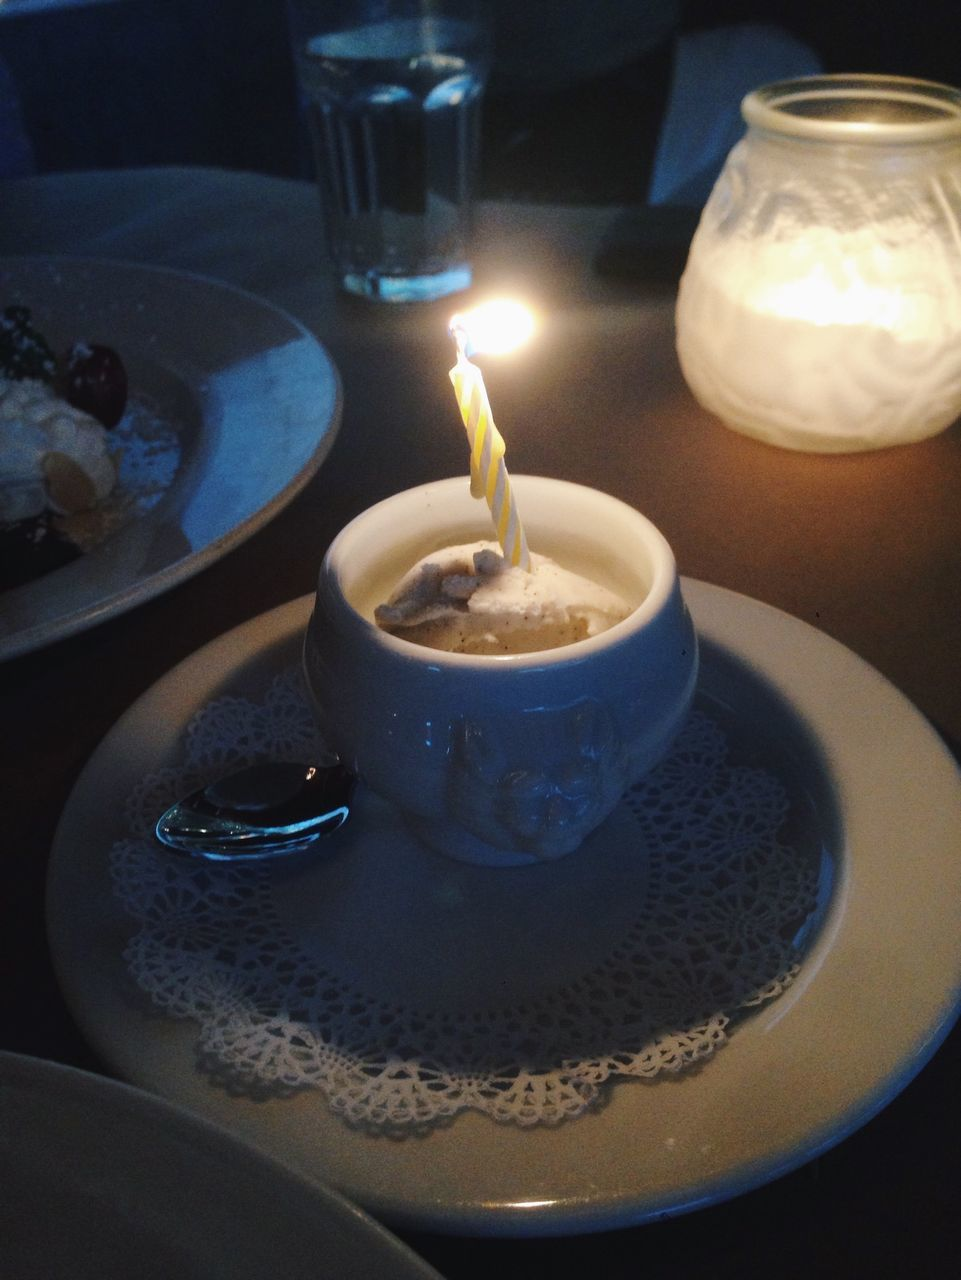 Food And Lit Candles On Table